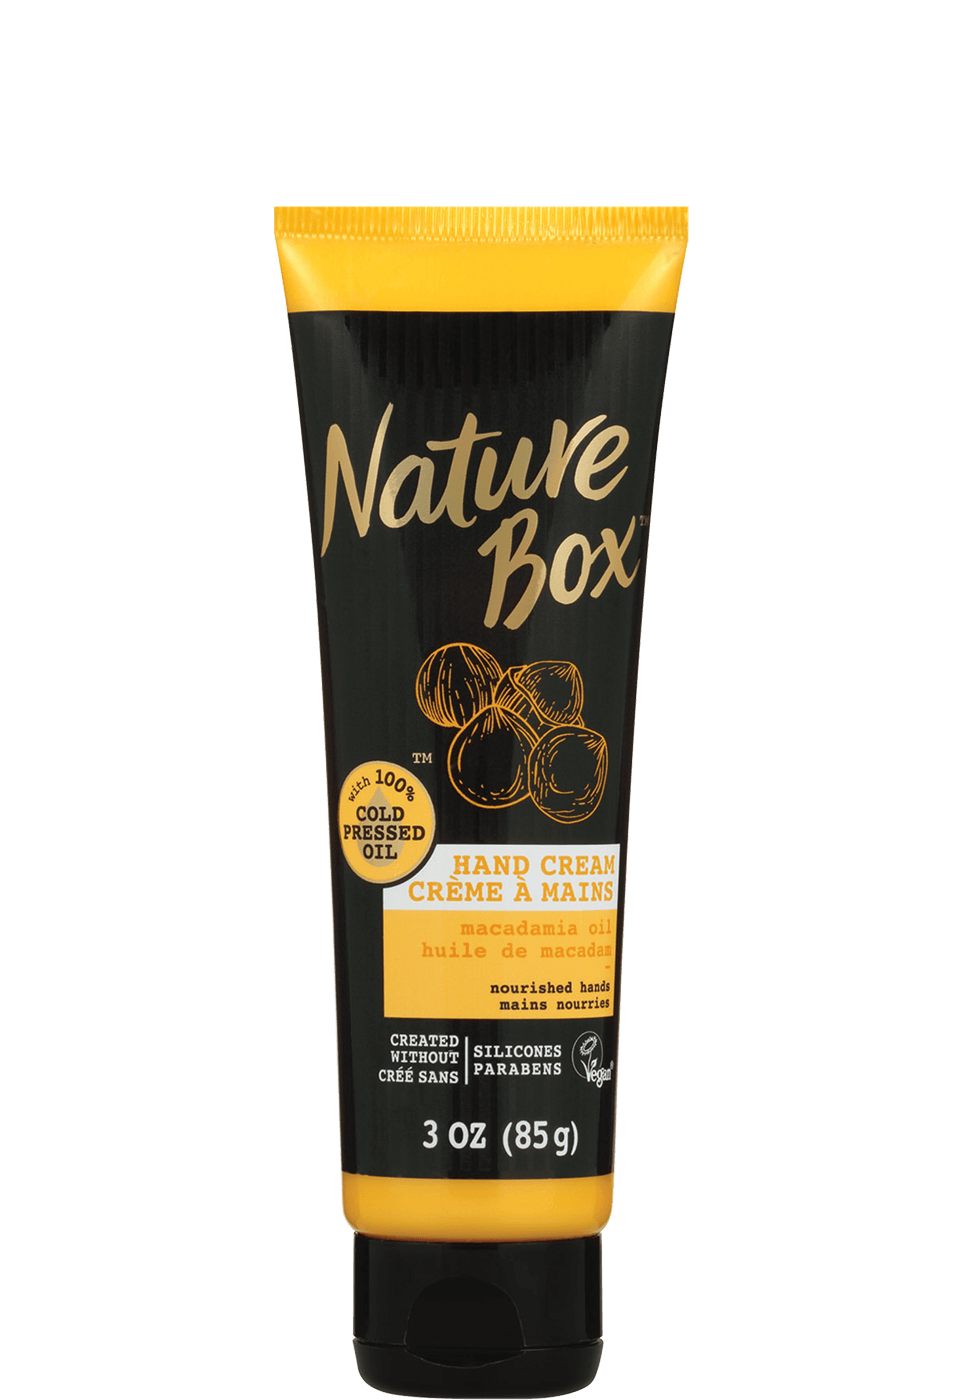 naturebox_us_macadamia_hand_cream_970x1400